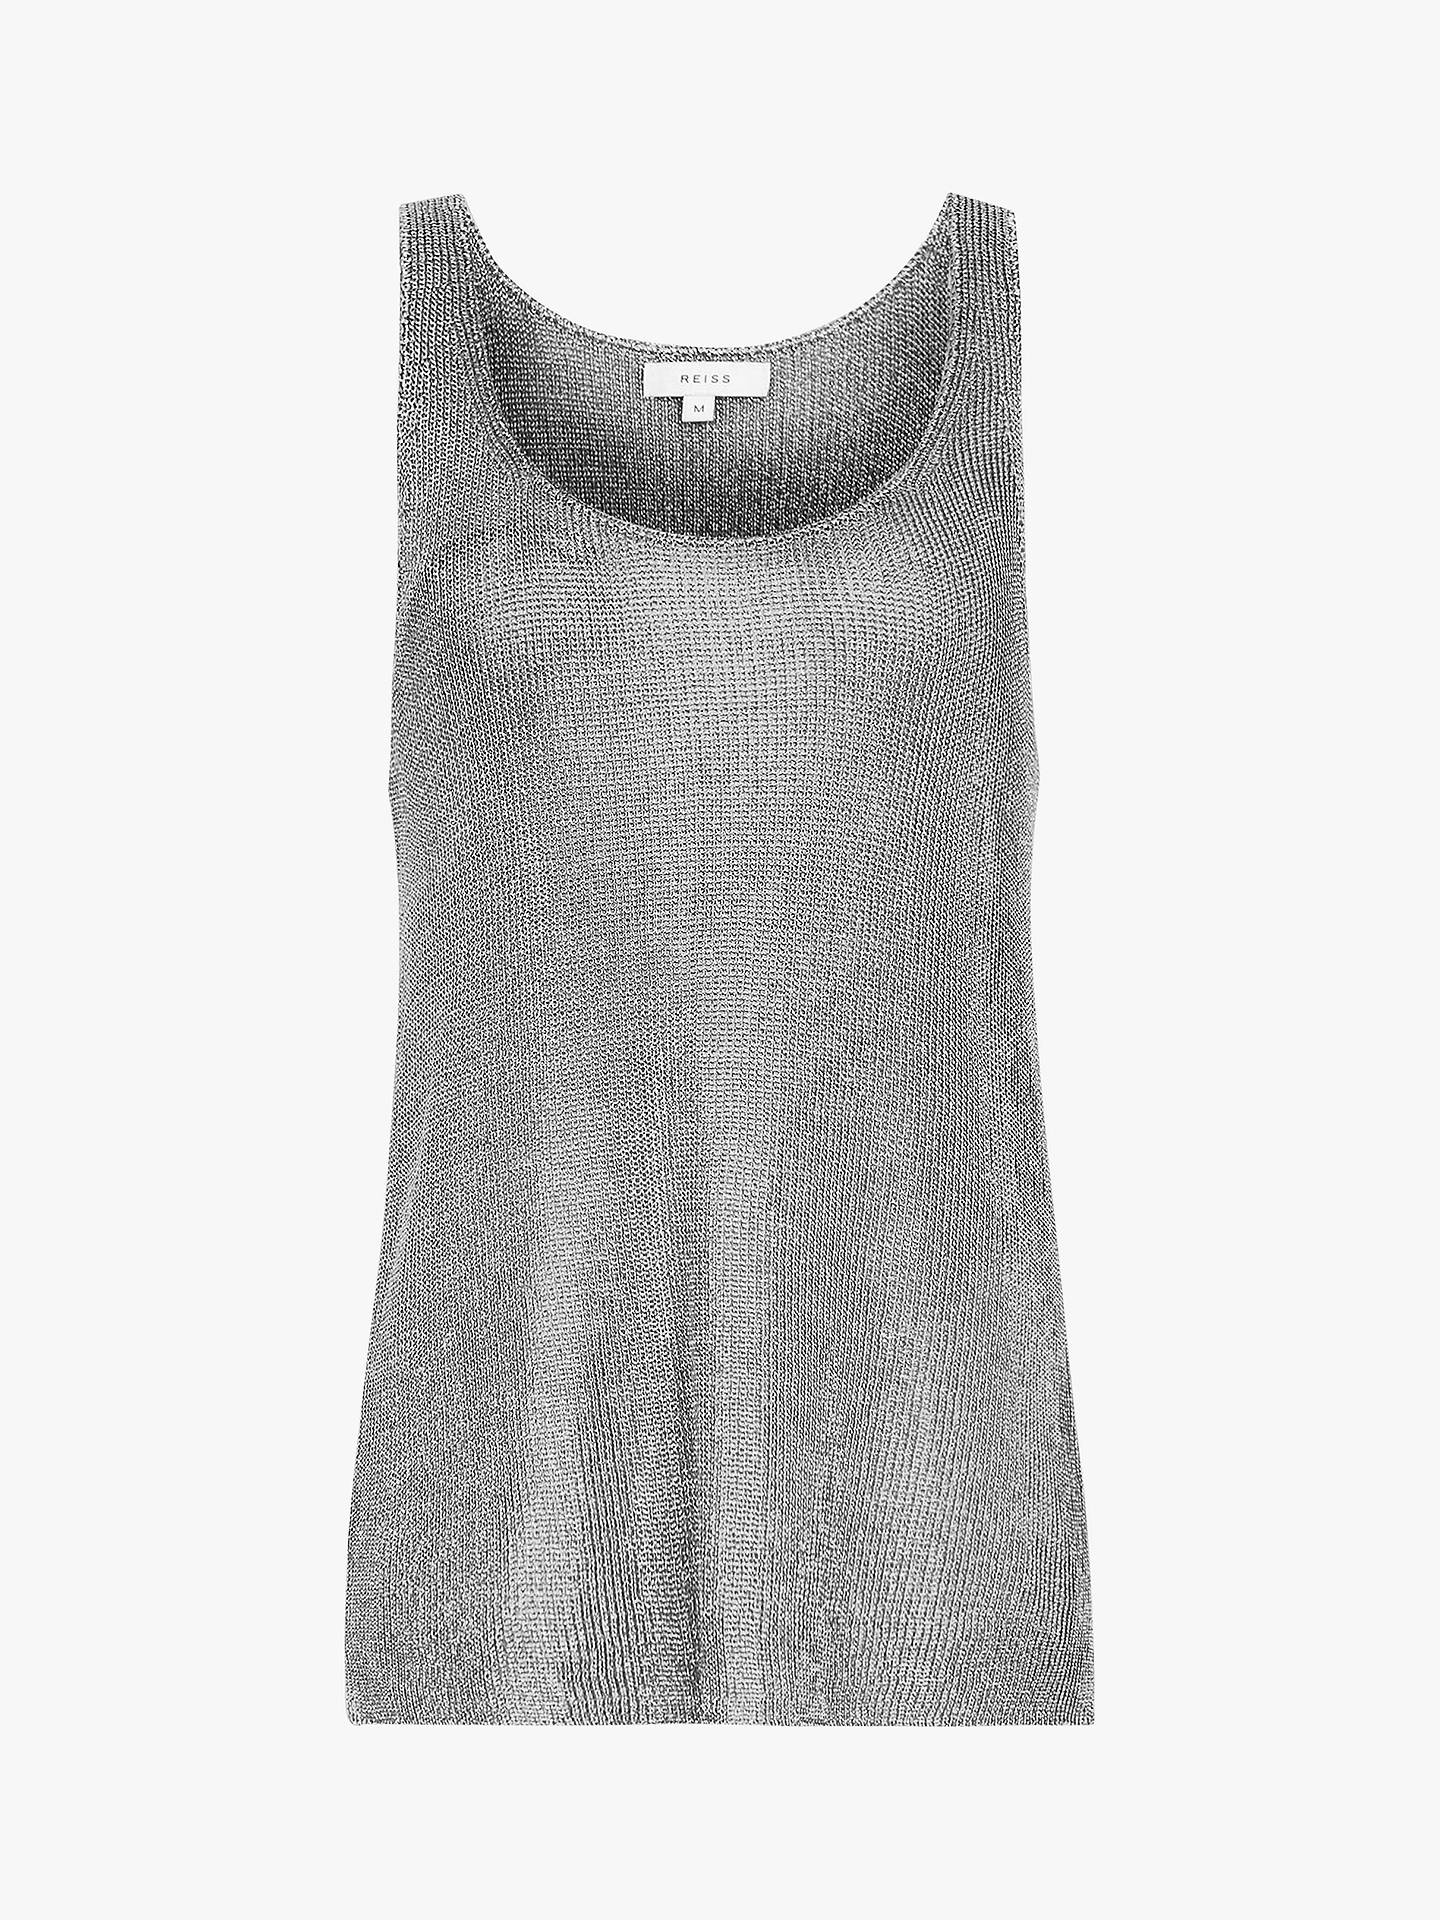 BuyReiss Lilian Metallic Knitted Top, Silver, M Online at johnlewis.com